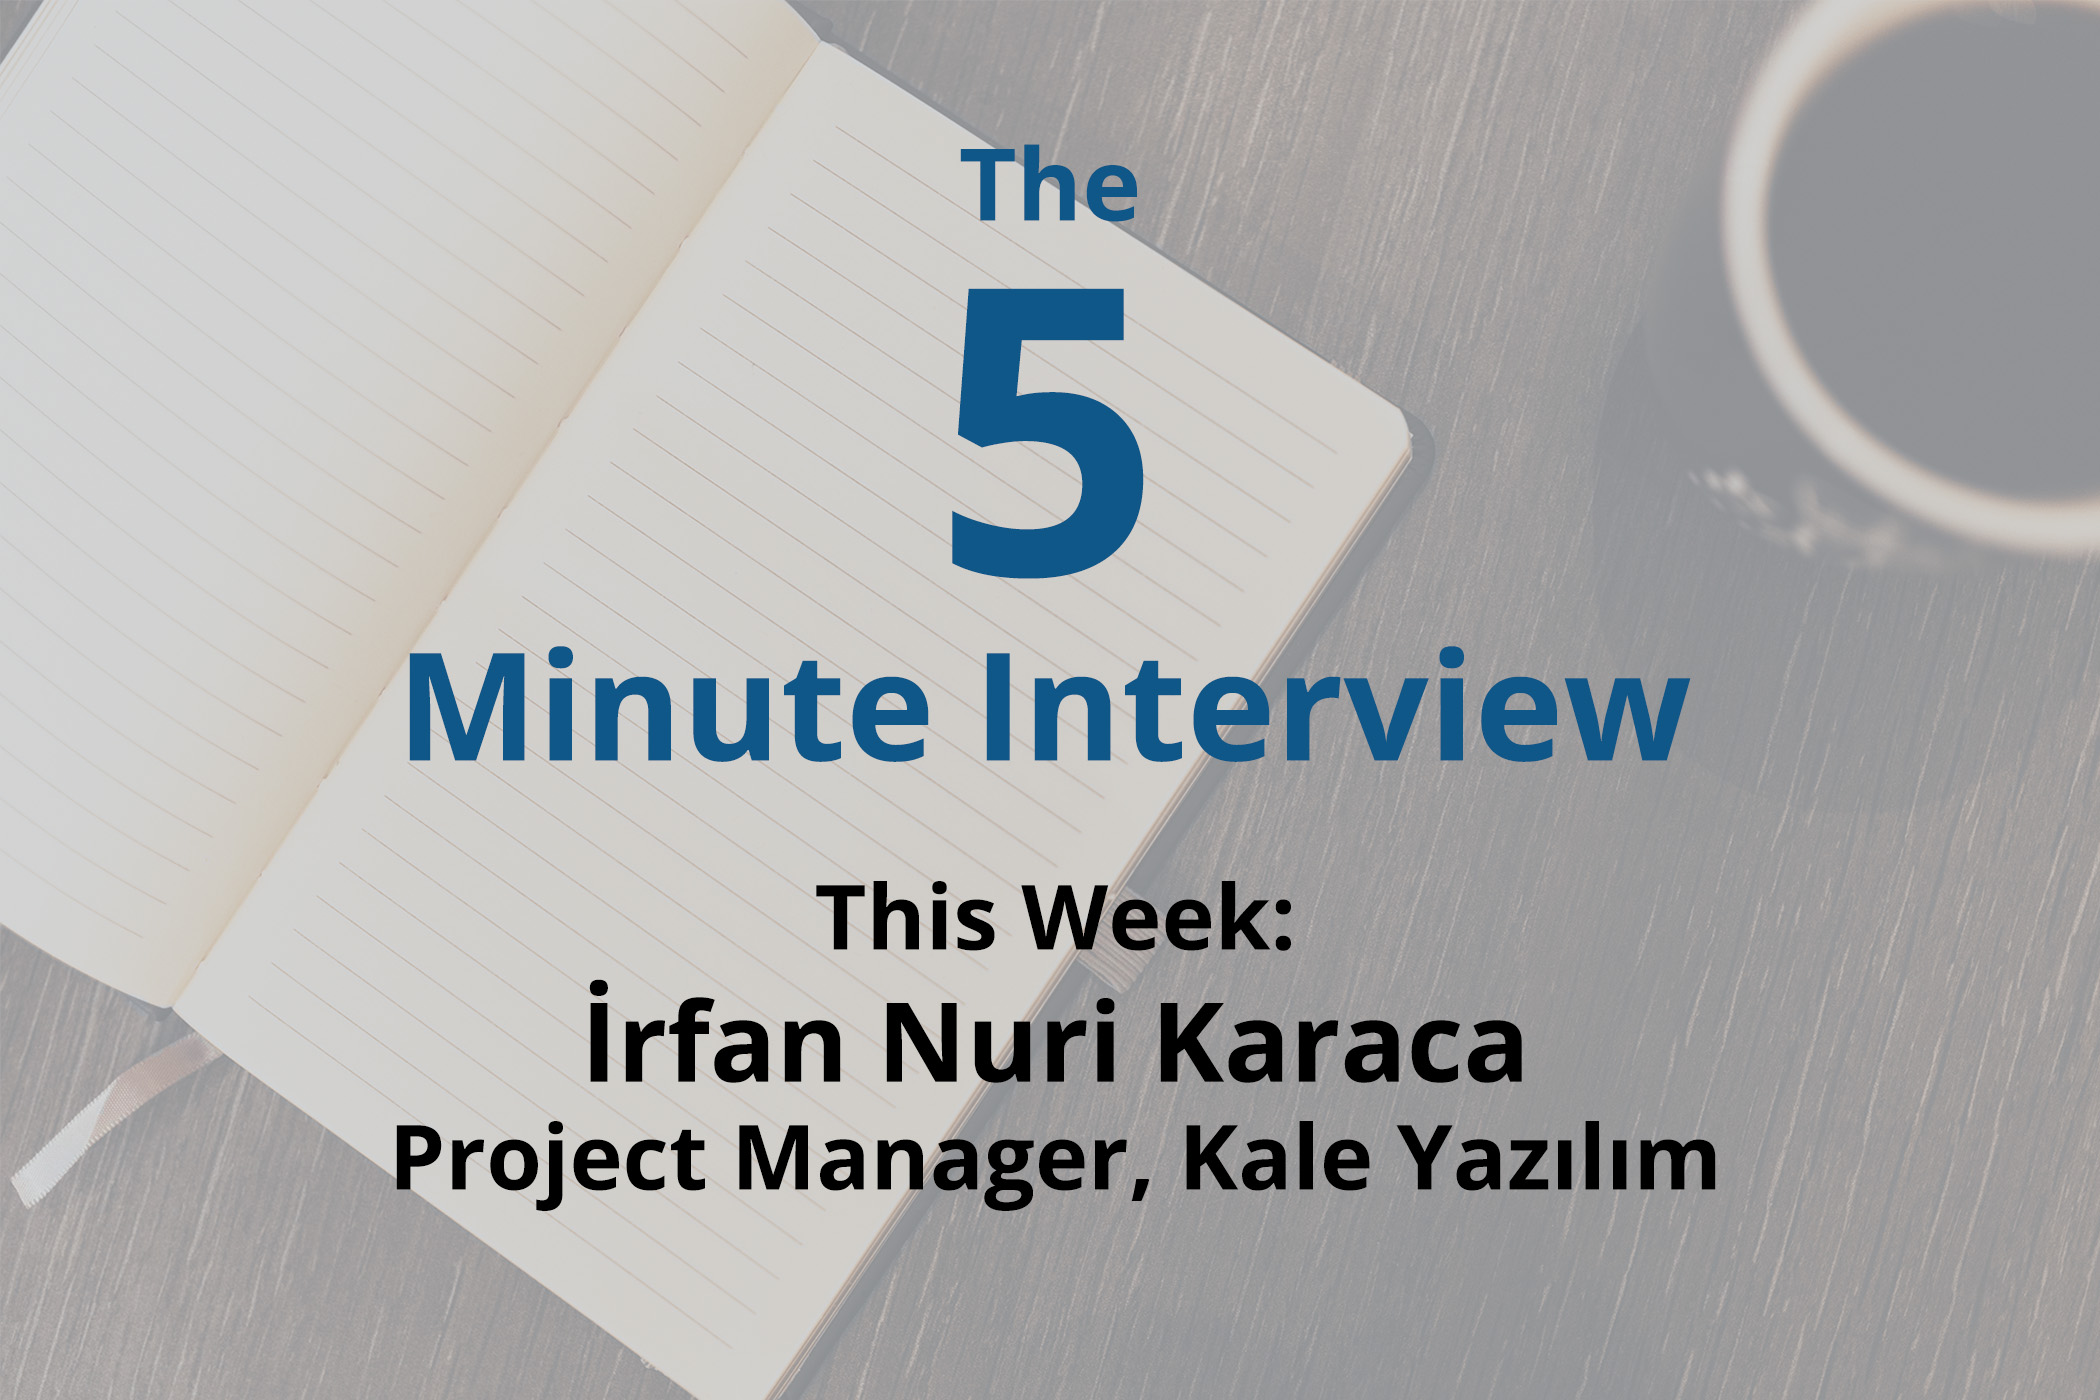 the 5 minute interview İrfan nuri karaca project manager at kale catch this week s 5 minute interview İrfan nuri karaca project manager at kale